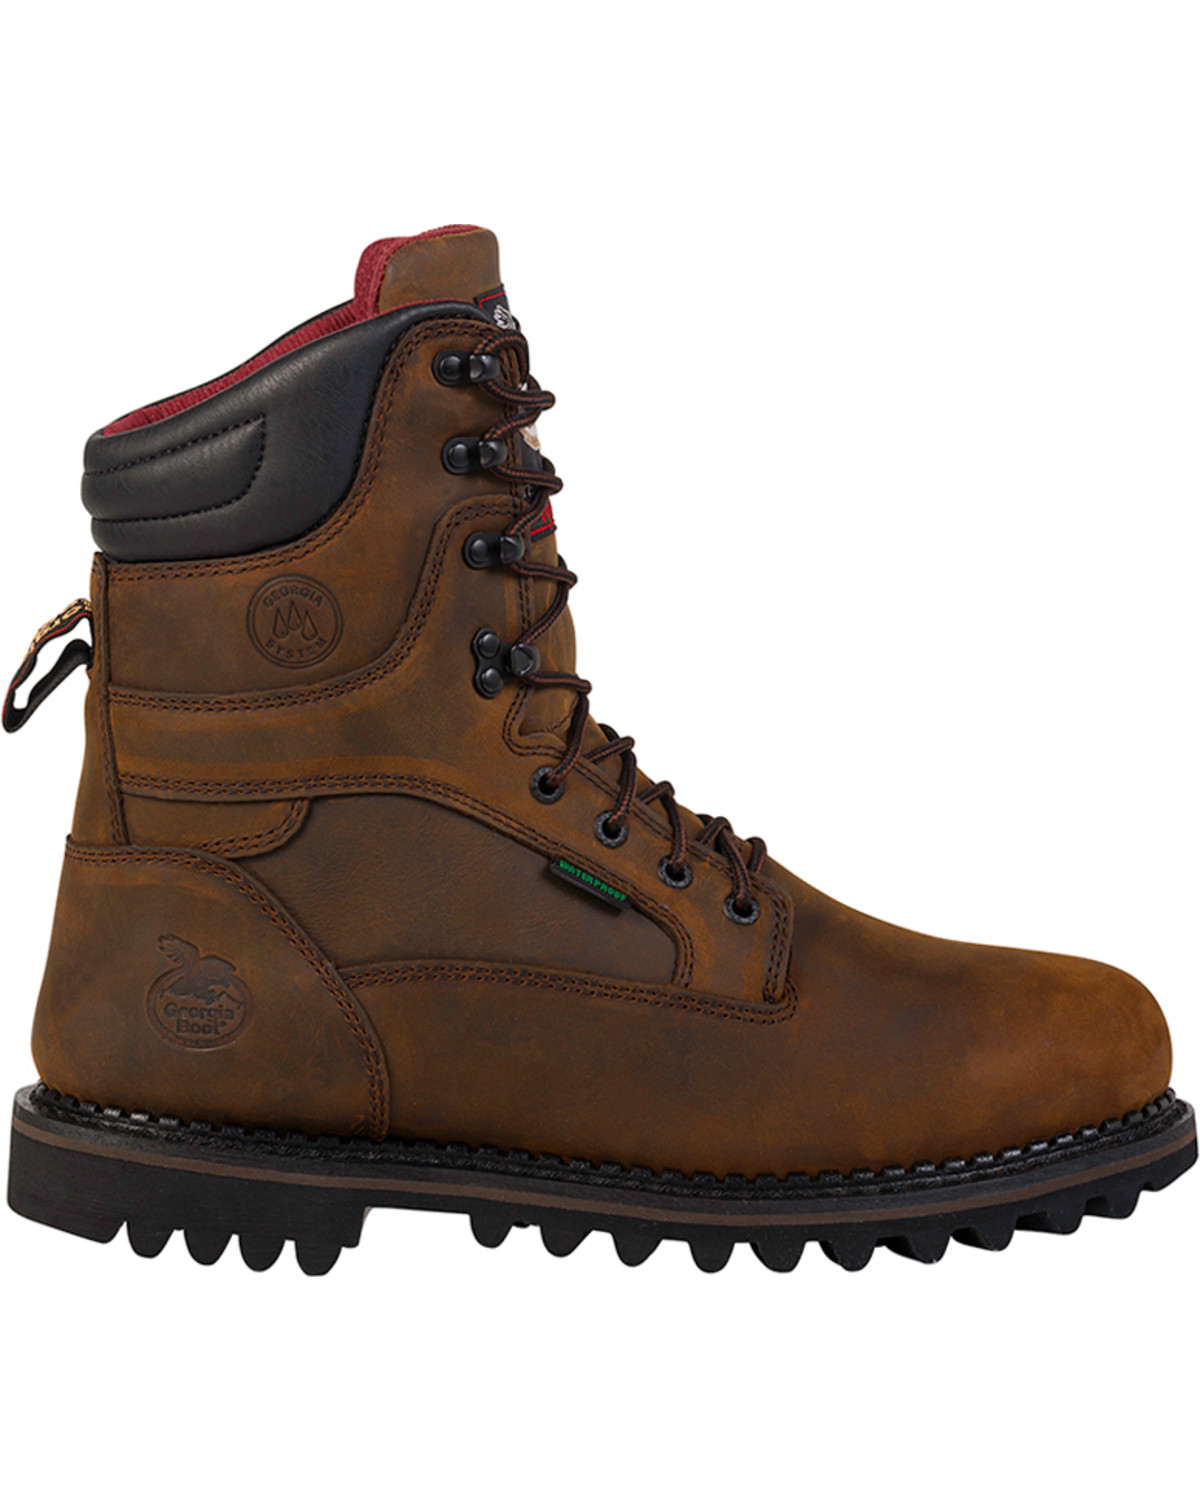 Georgia Men S Arctic Toe Waterproof Insulated Work Boots